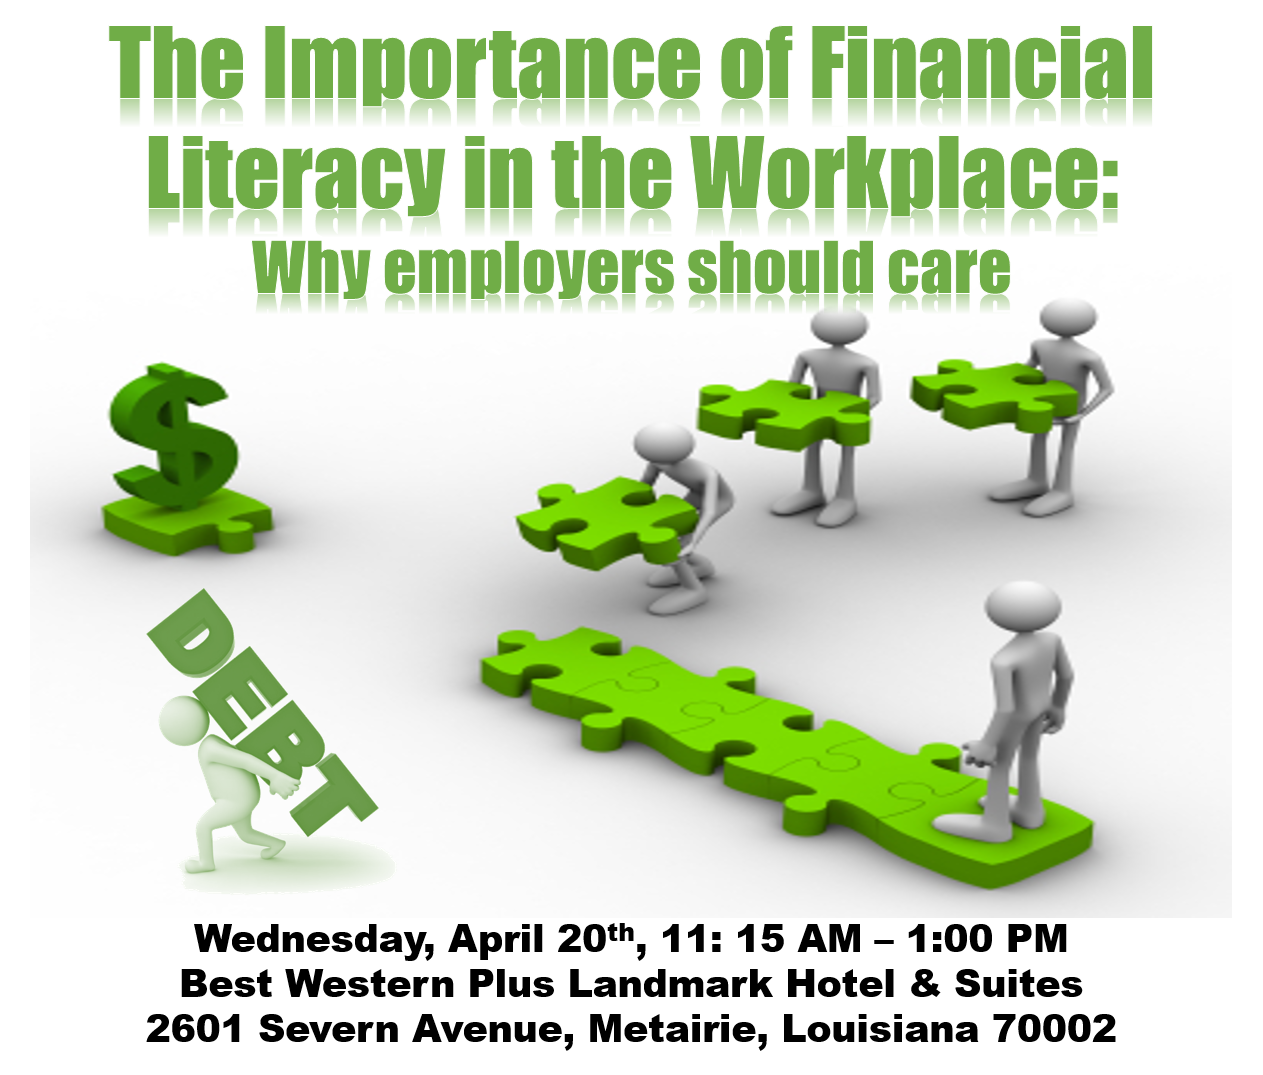 Financial clipart financial literacy. April luncheon the importance